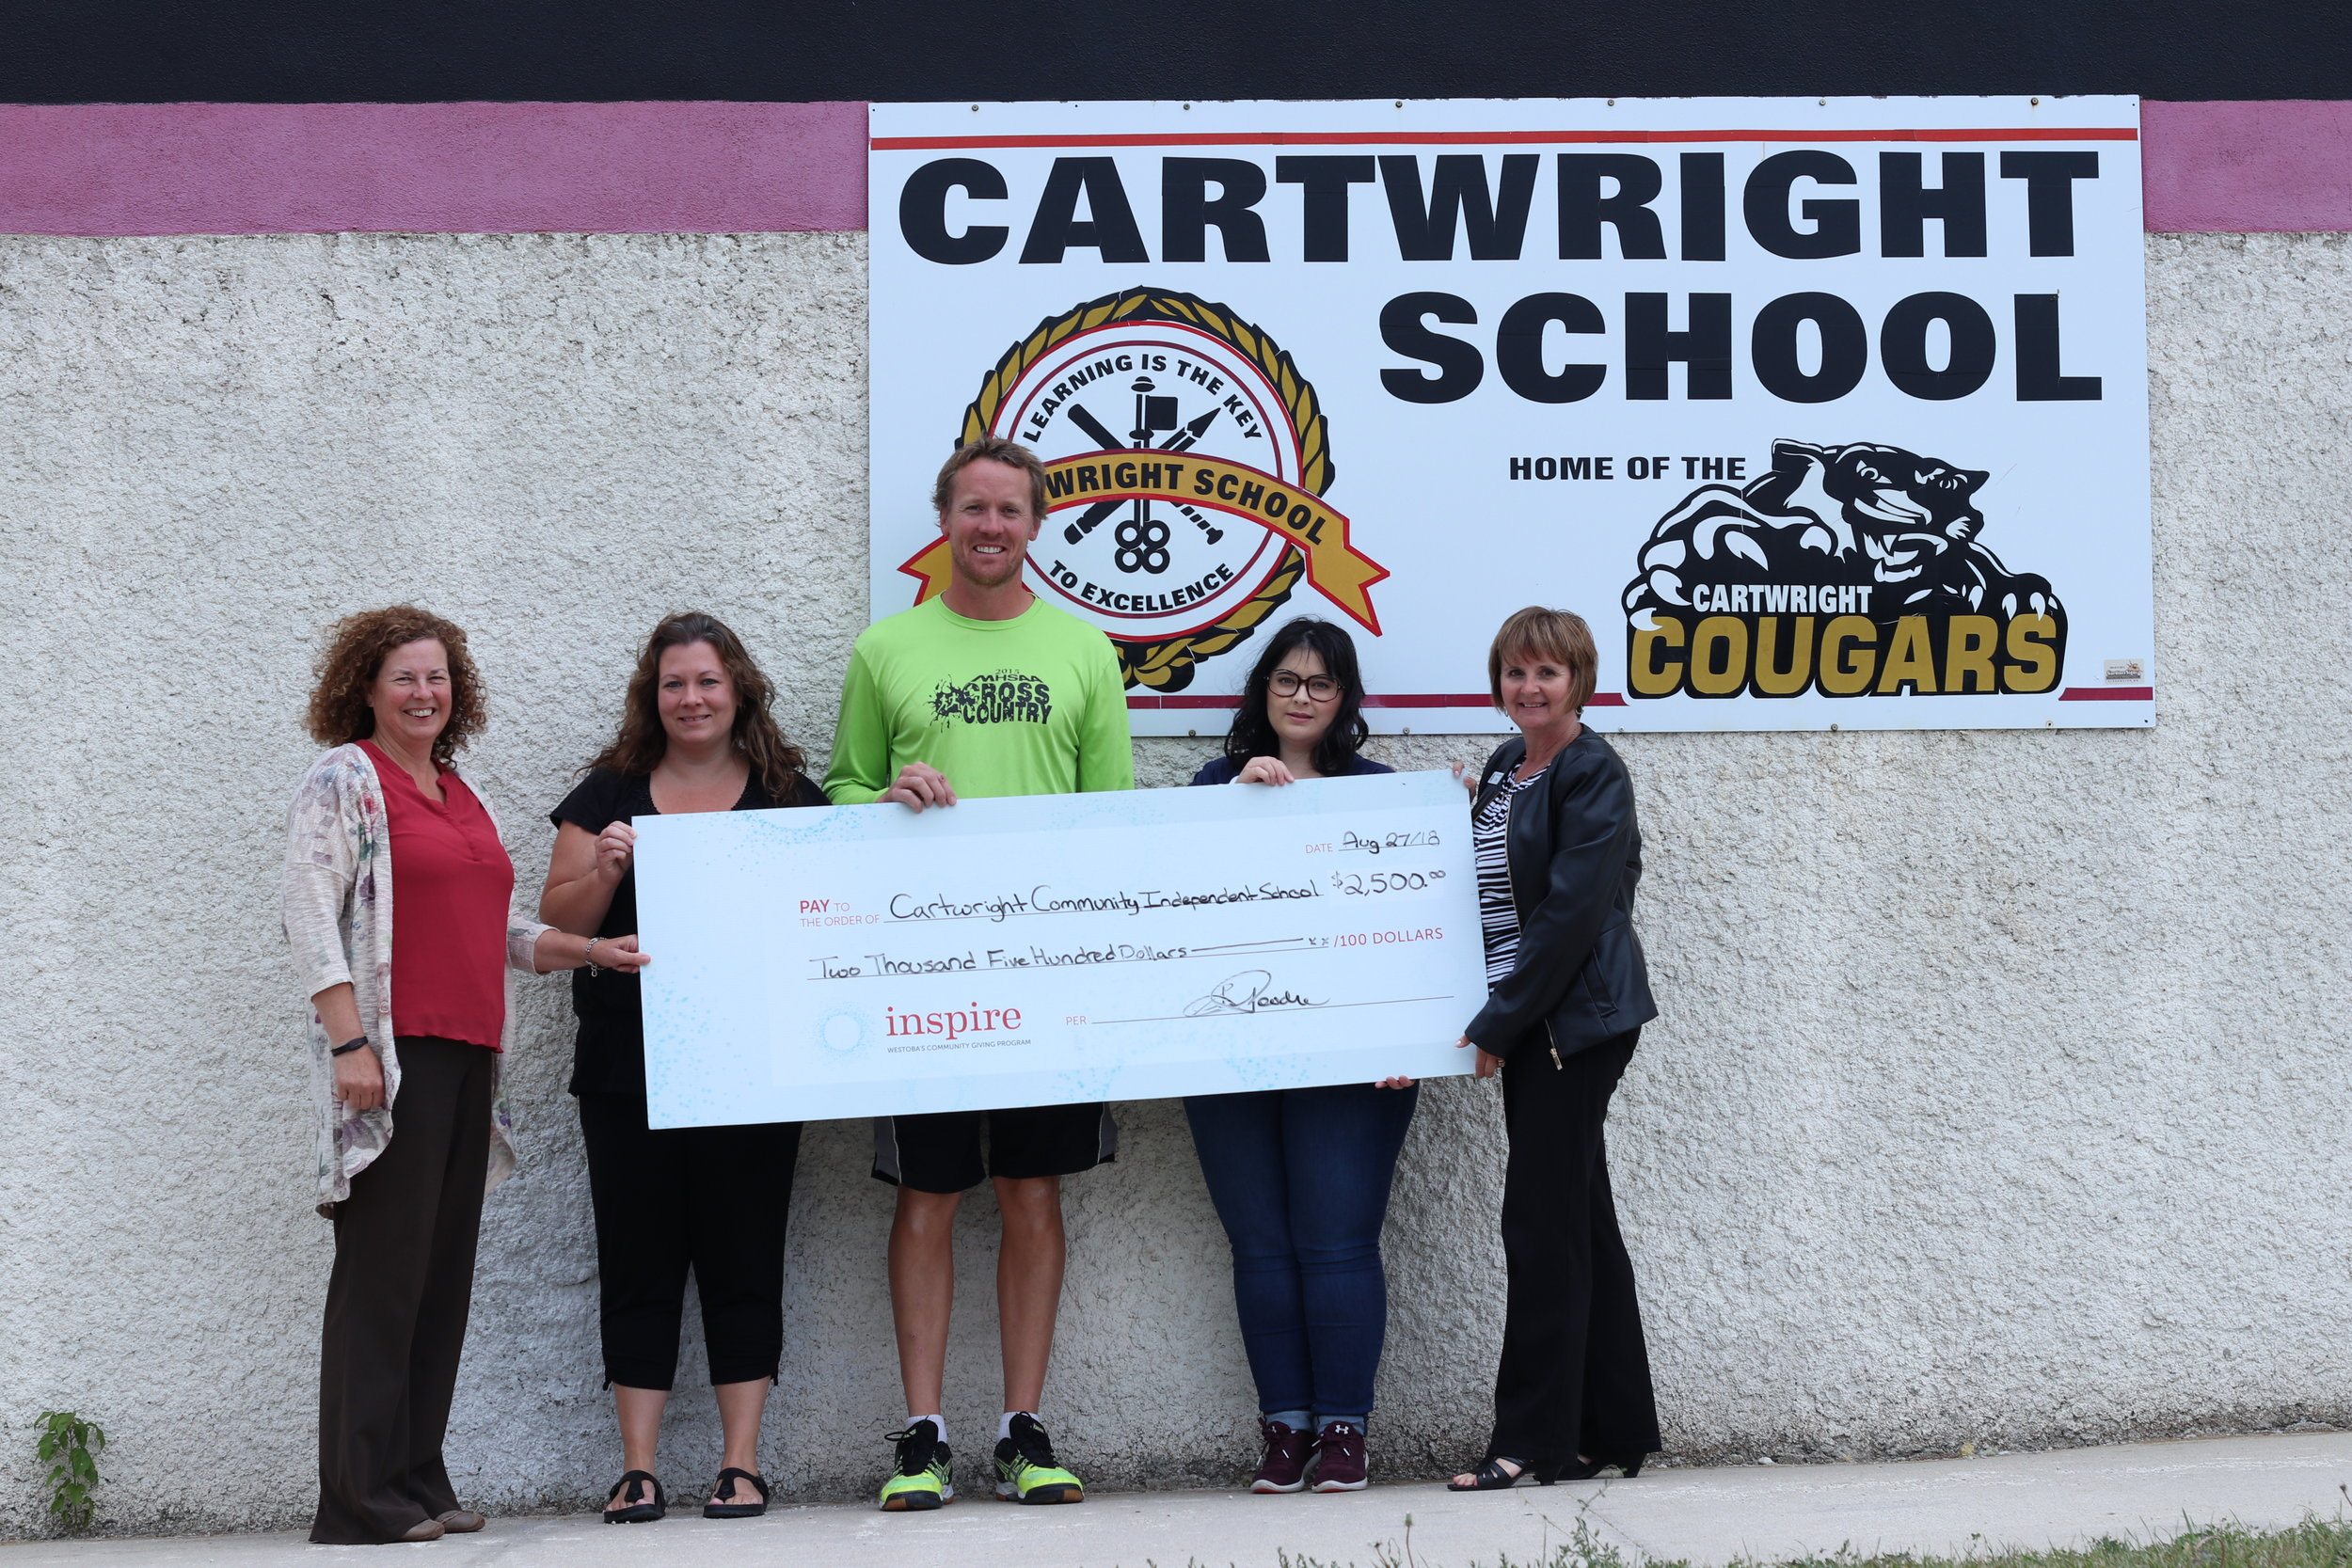 Cartwright Community Independent School - Was awarded $2,500 to support the continued implementation of their revitalization project to improve outdoor play facilities for students and community members.